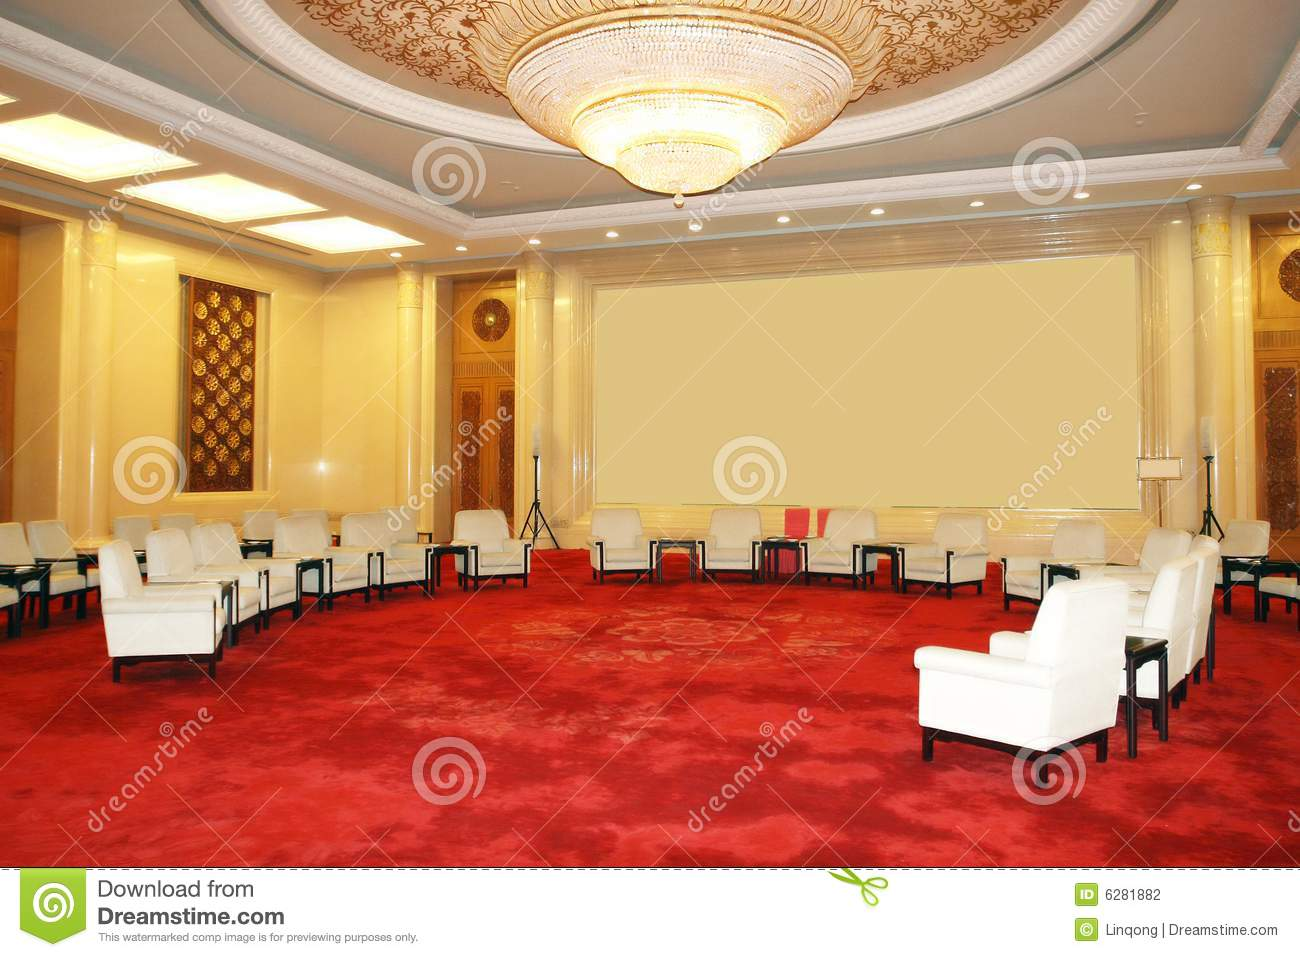 Reception room stock photo  Image of chinese, forum